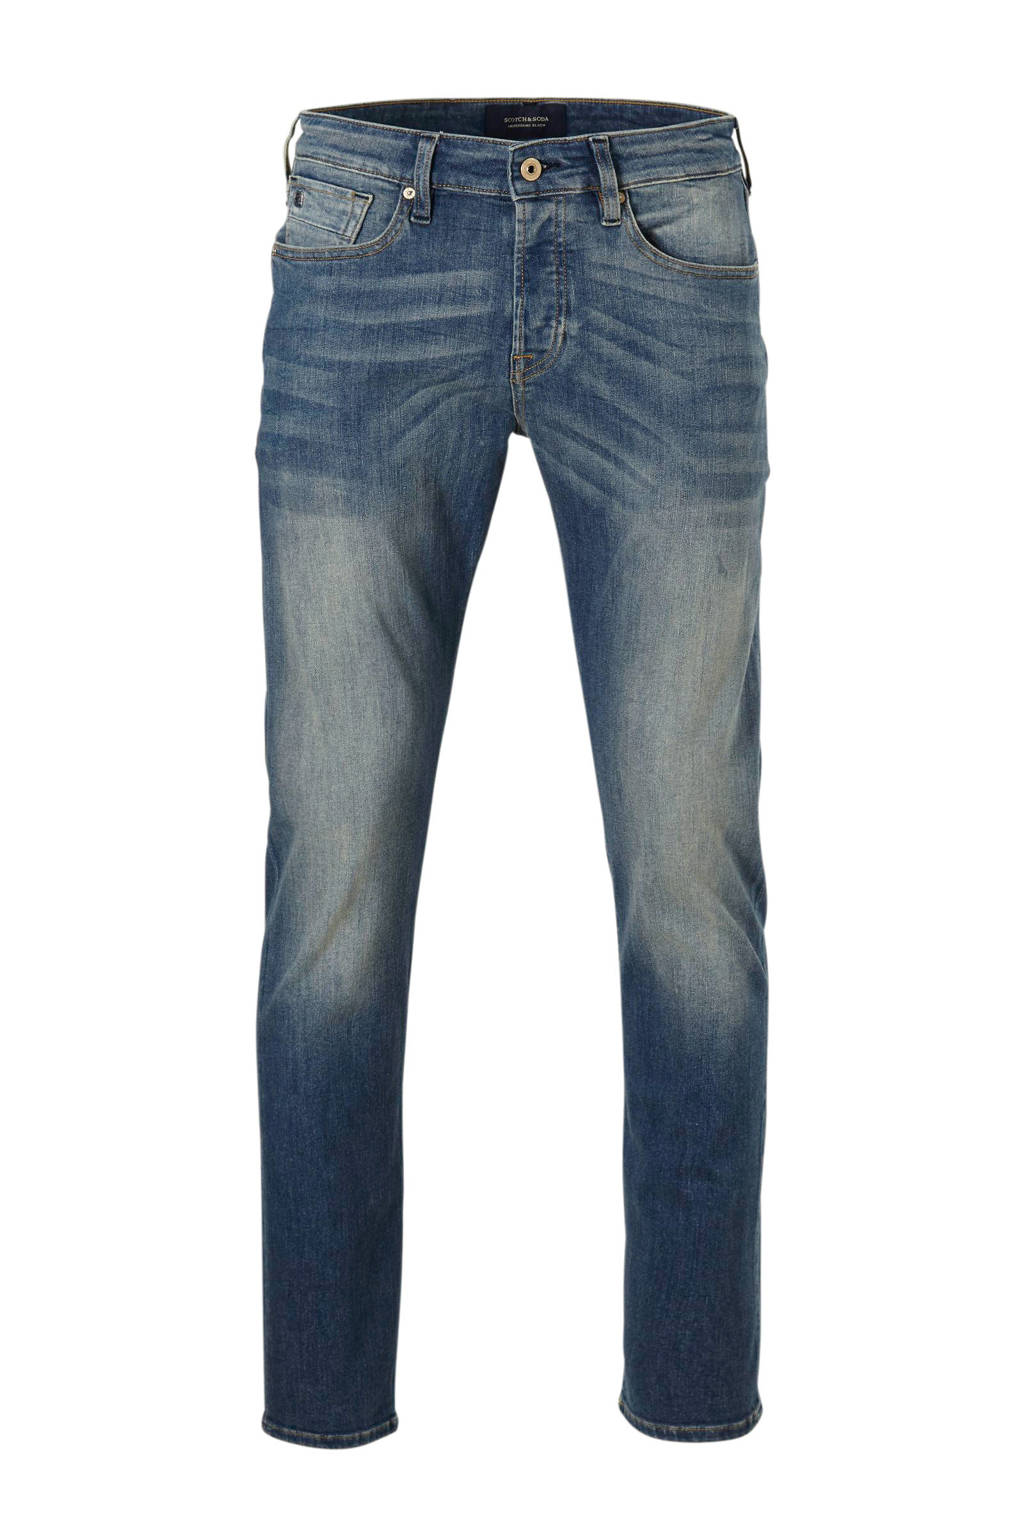 Scotch & Soda slim fit jeans Ralston, Light denim